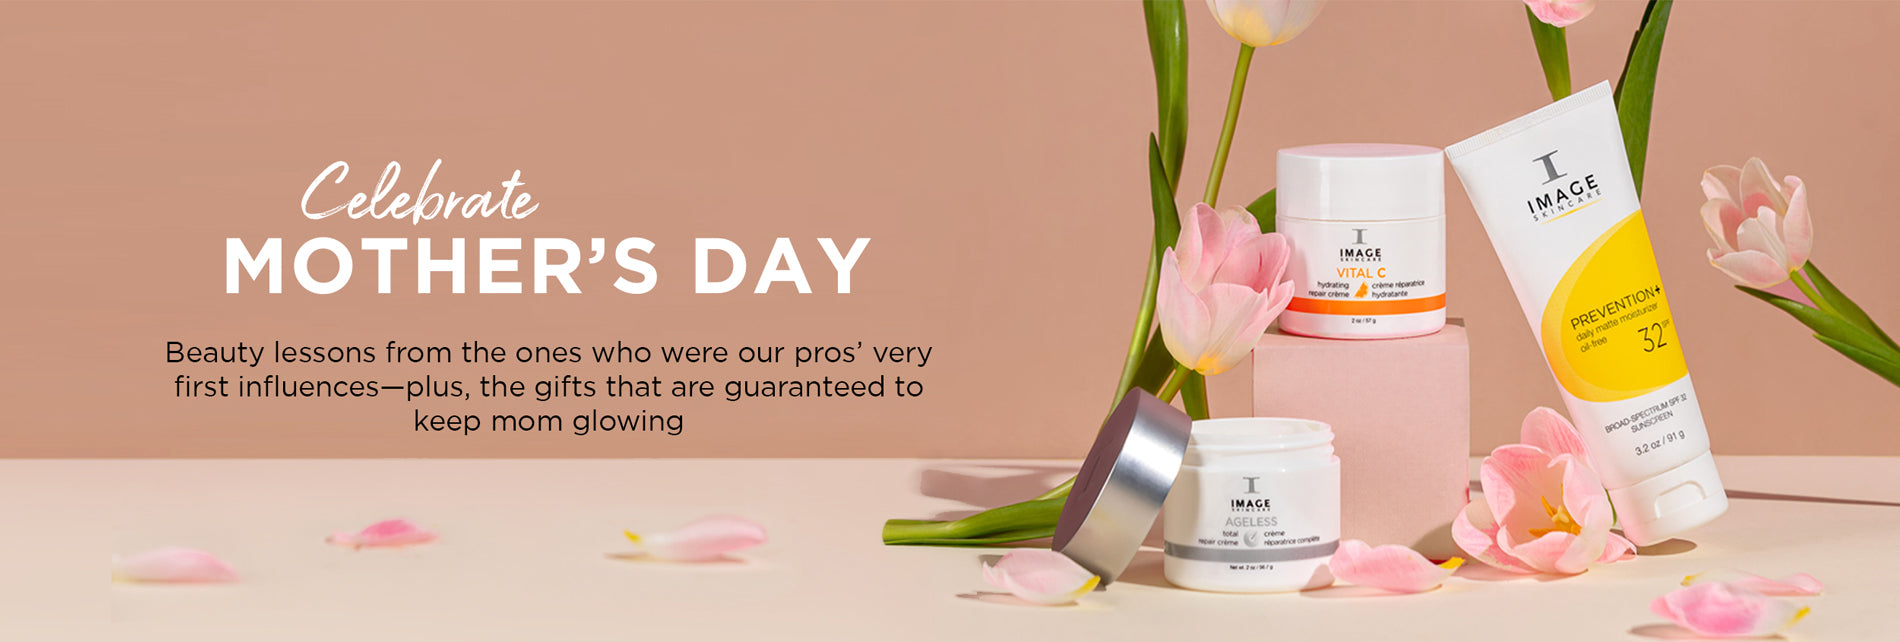 Mothers Day Skincare Gifts